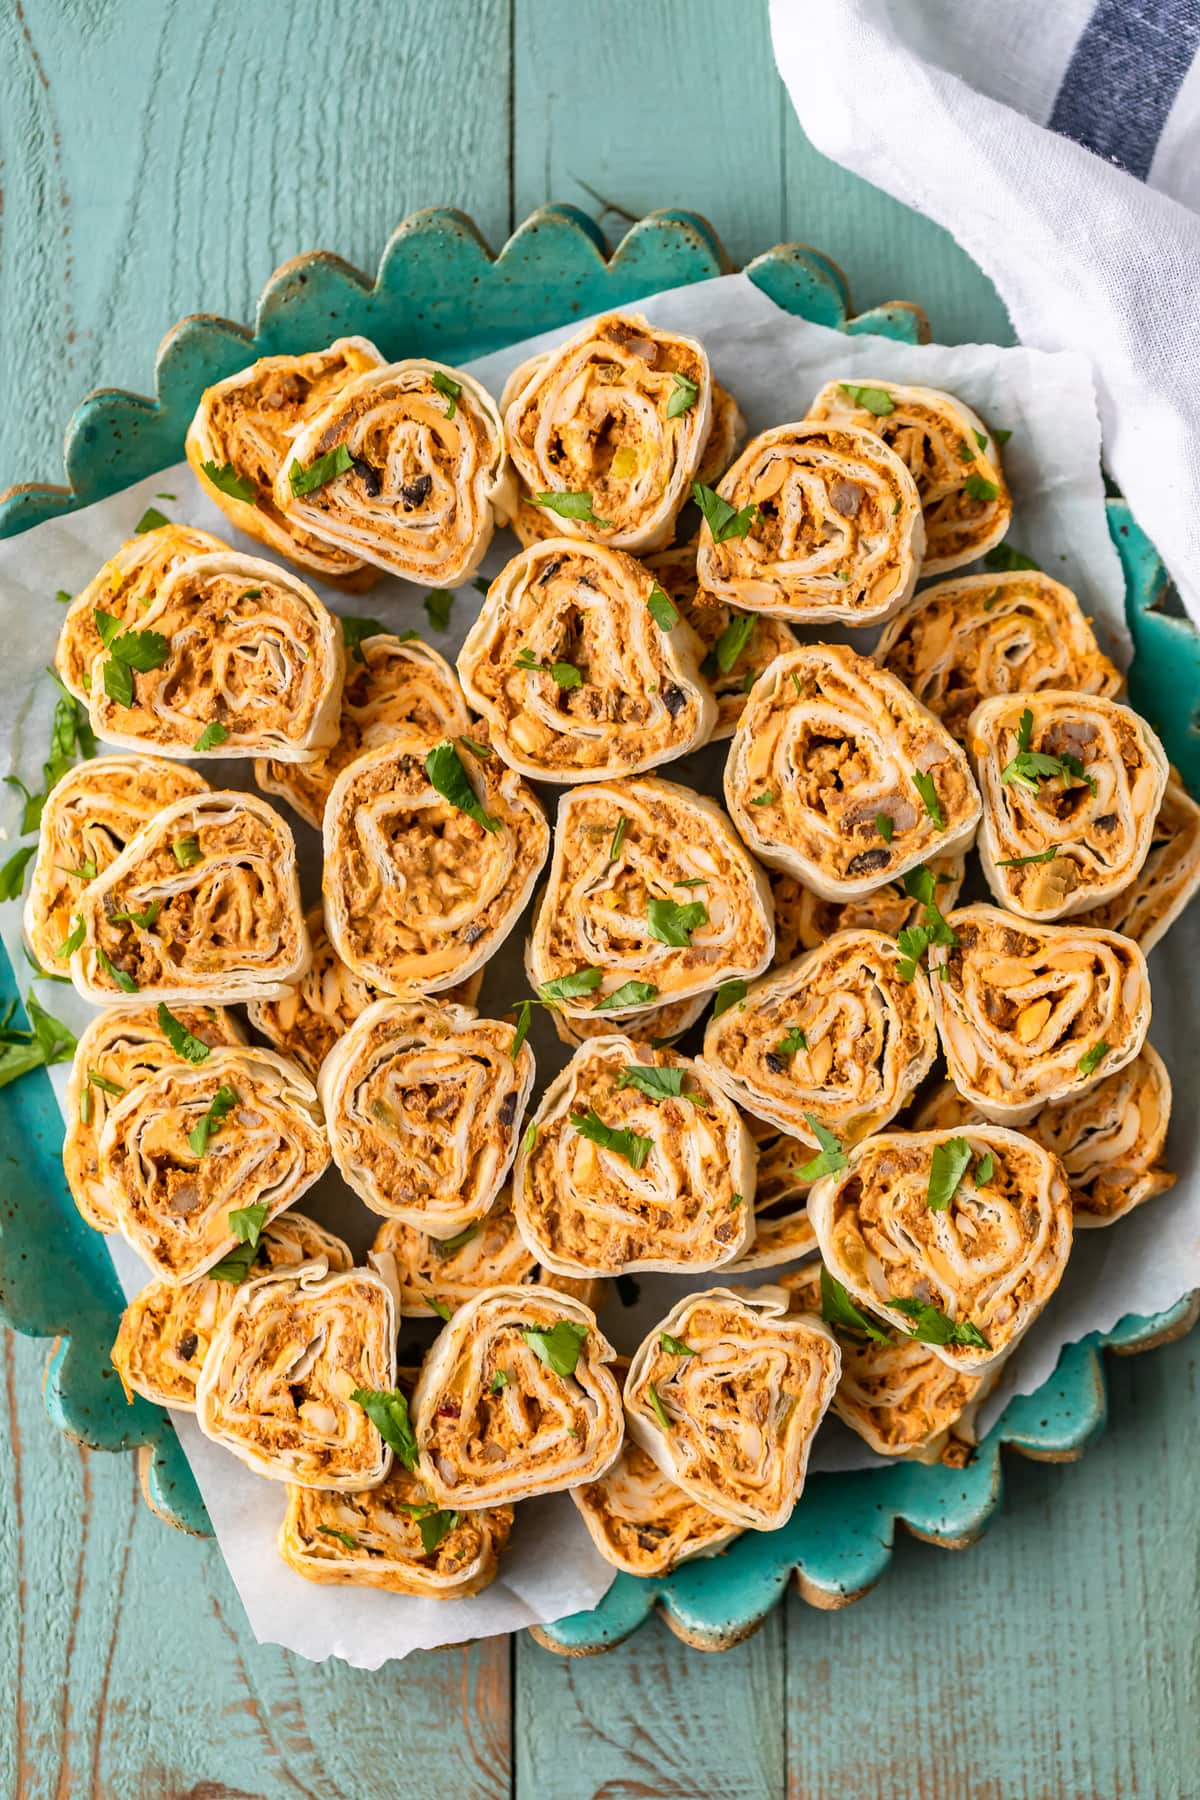 southwest sausage pinwheels on a turquoise serving plate